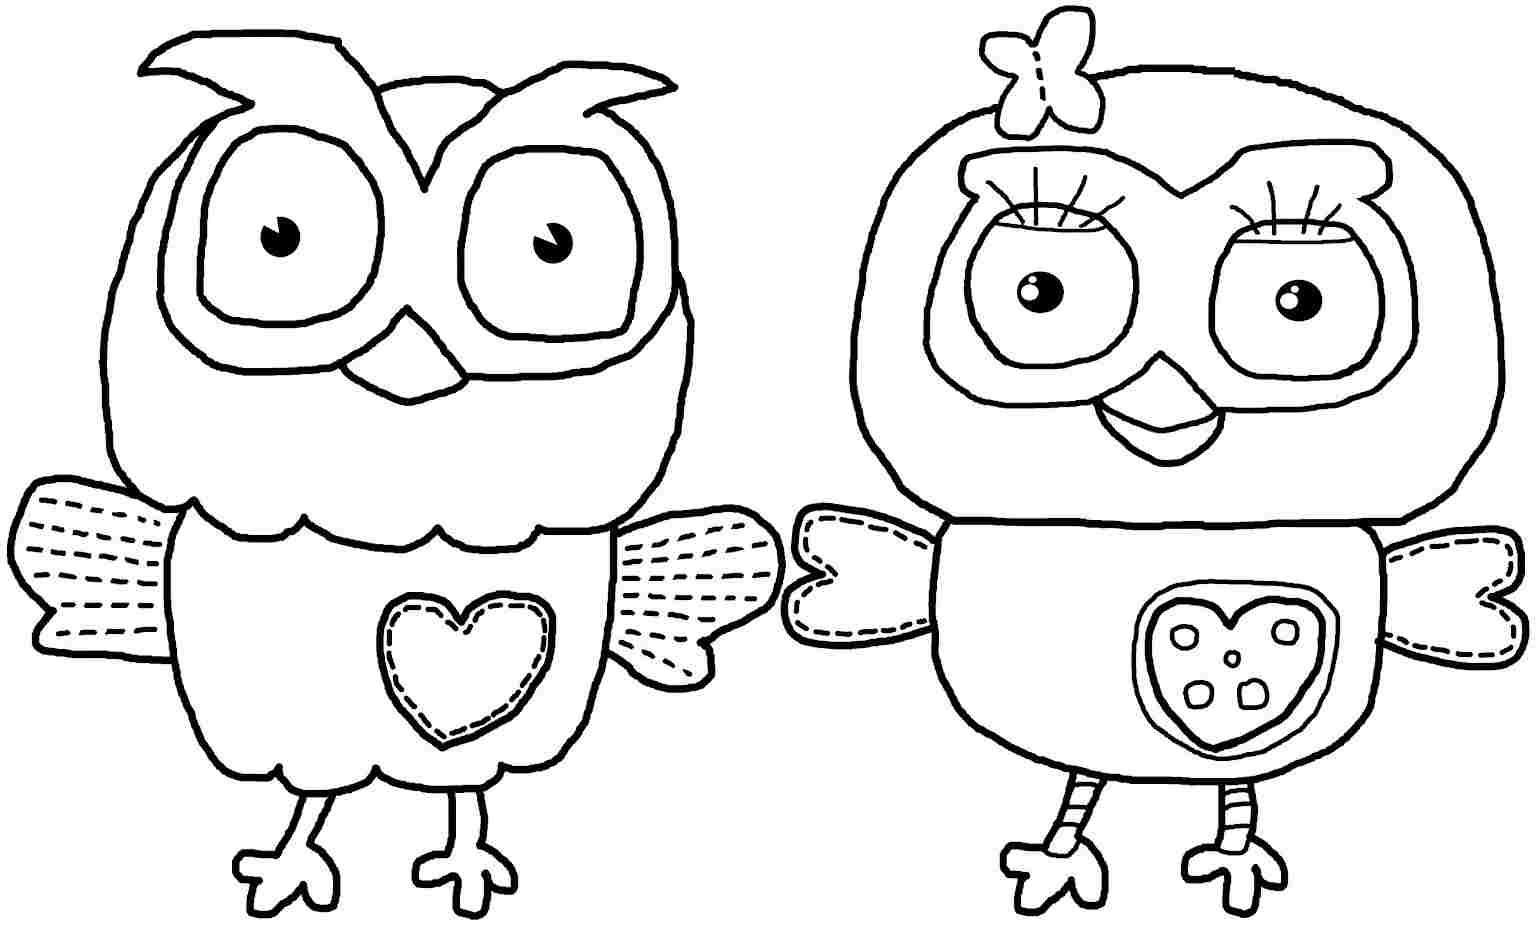 Owl Coloring Pages Printable Free Only Coloring Pages Free Coloring Pages For Printable